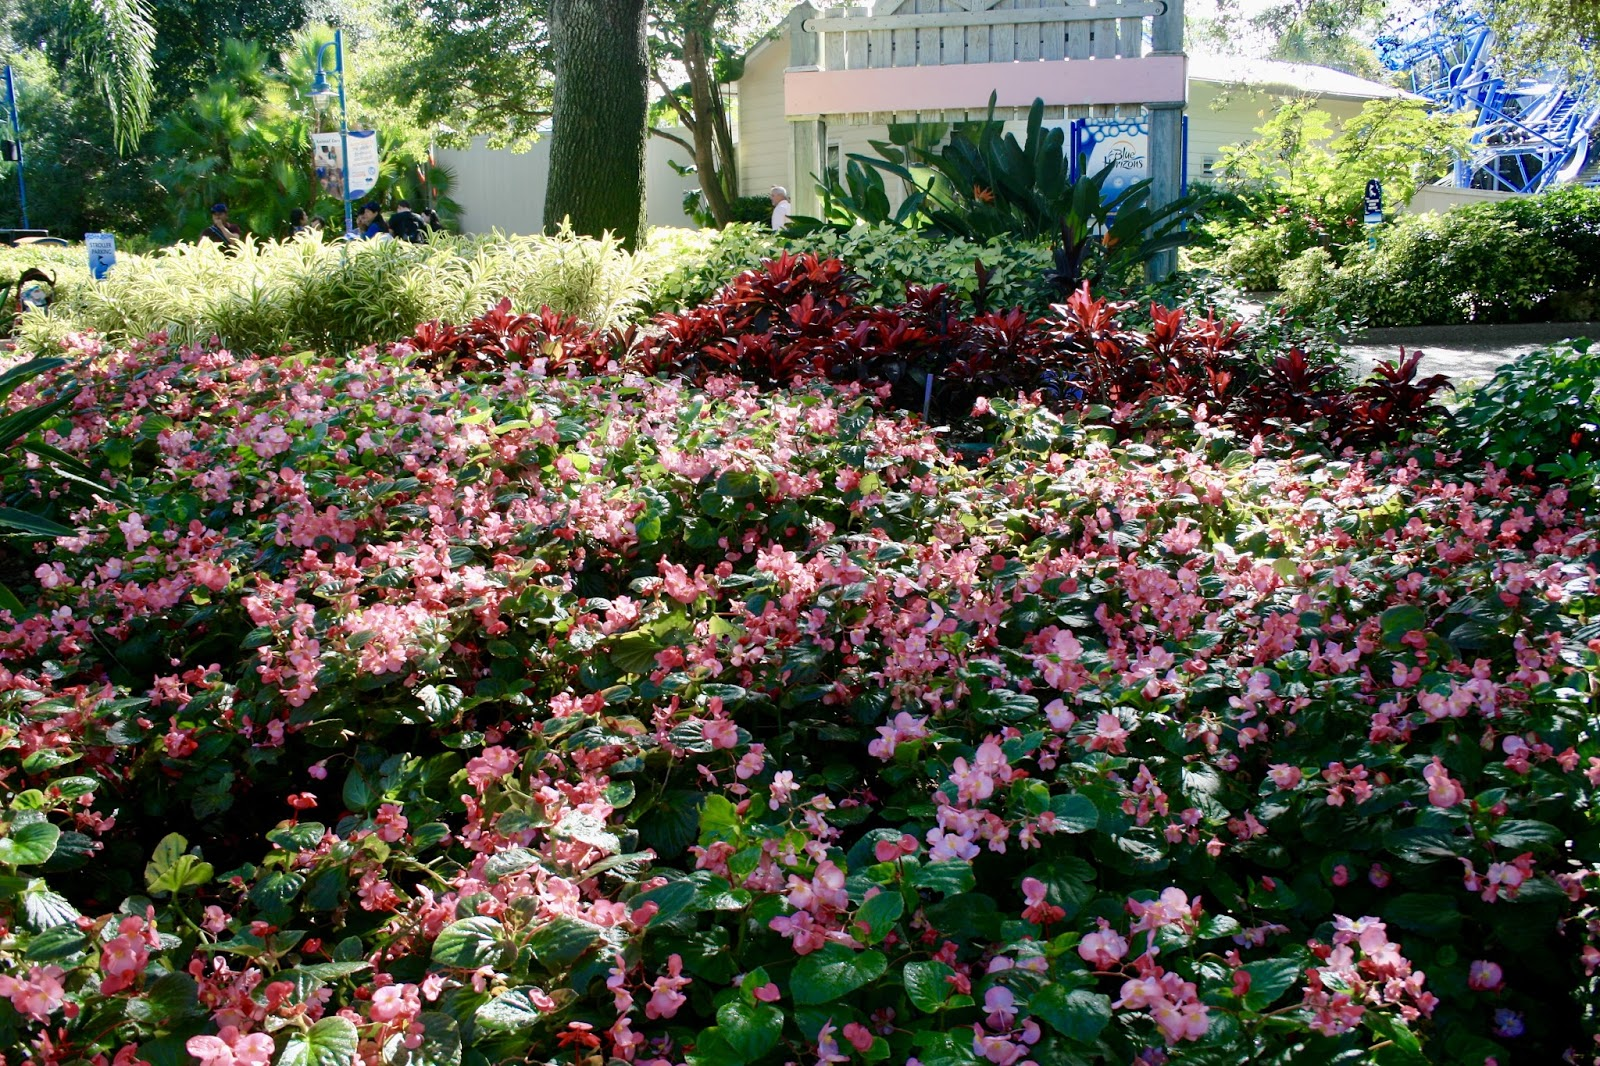 Year round plants for flower beds - Begonias Are Treated As Annuals In My Zone But In Florida They Produce Beautiful Flowers Year Round What A Gorgeous Bed Of Begonias